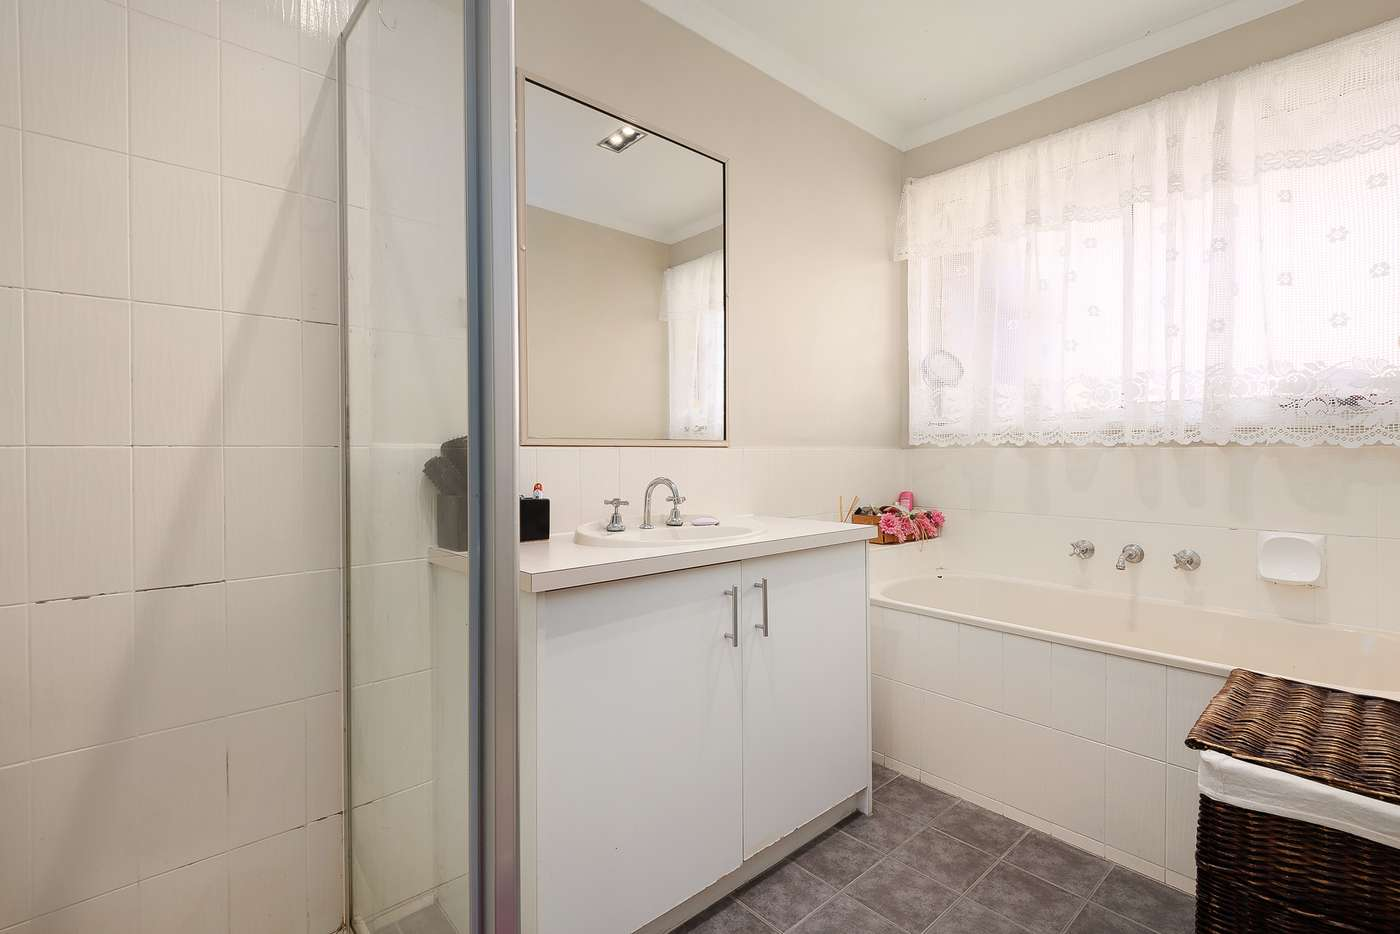 Sixth view of Homely unit listing, 2/20 Frost Drive, Delahey VIC 3037